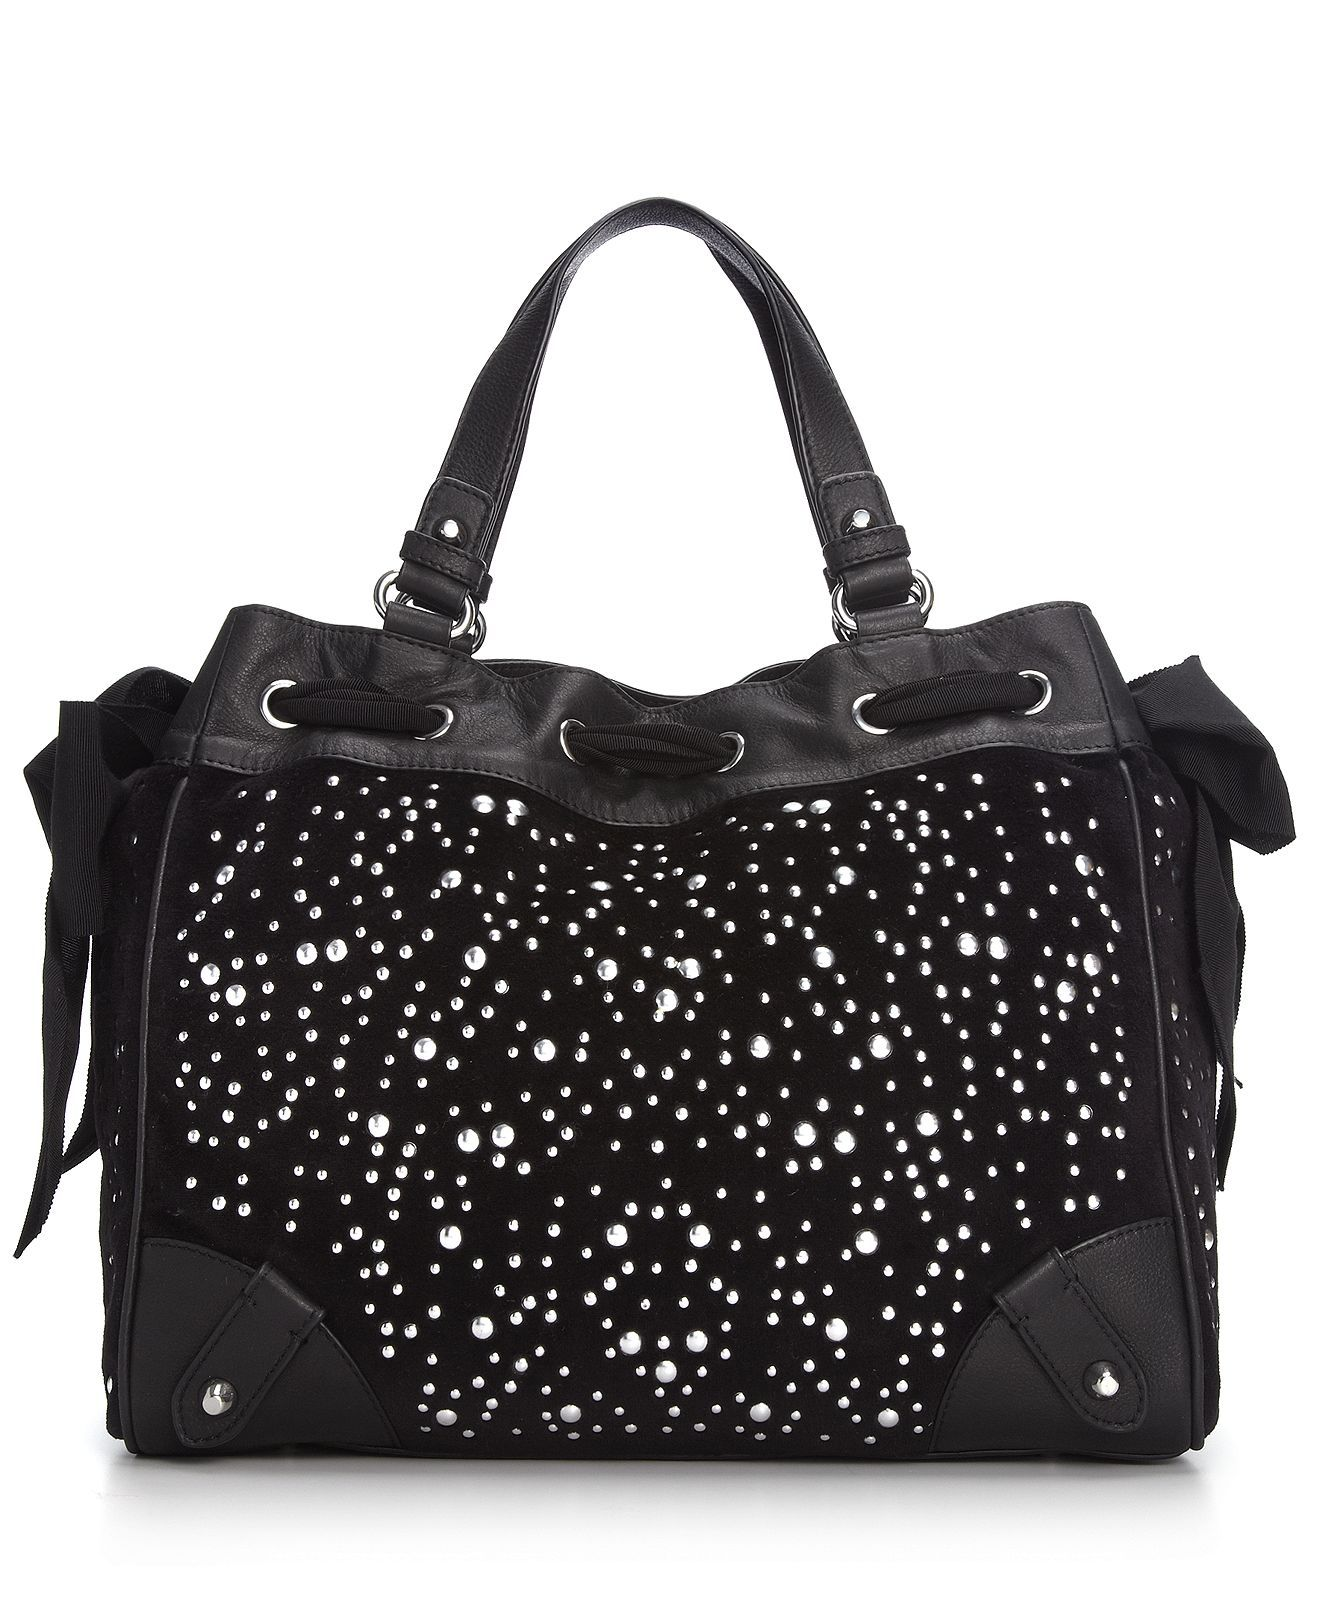 c11d891a28b6 Juicy Couture Handbag, Studded Velour Daydreamer Tote - Handbags &  Accessories - Macy's